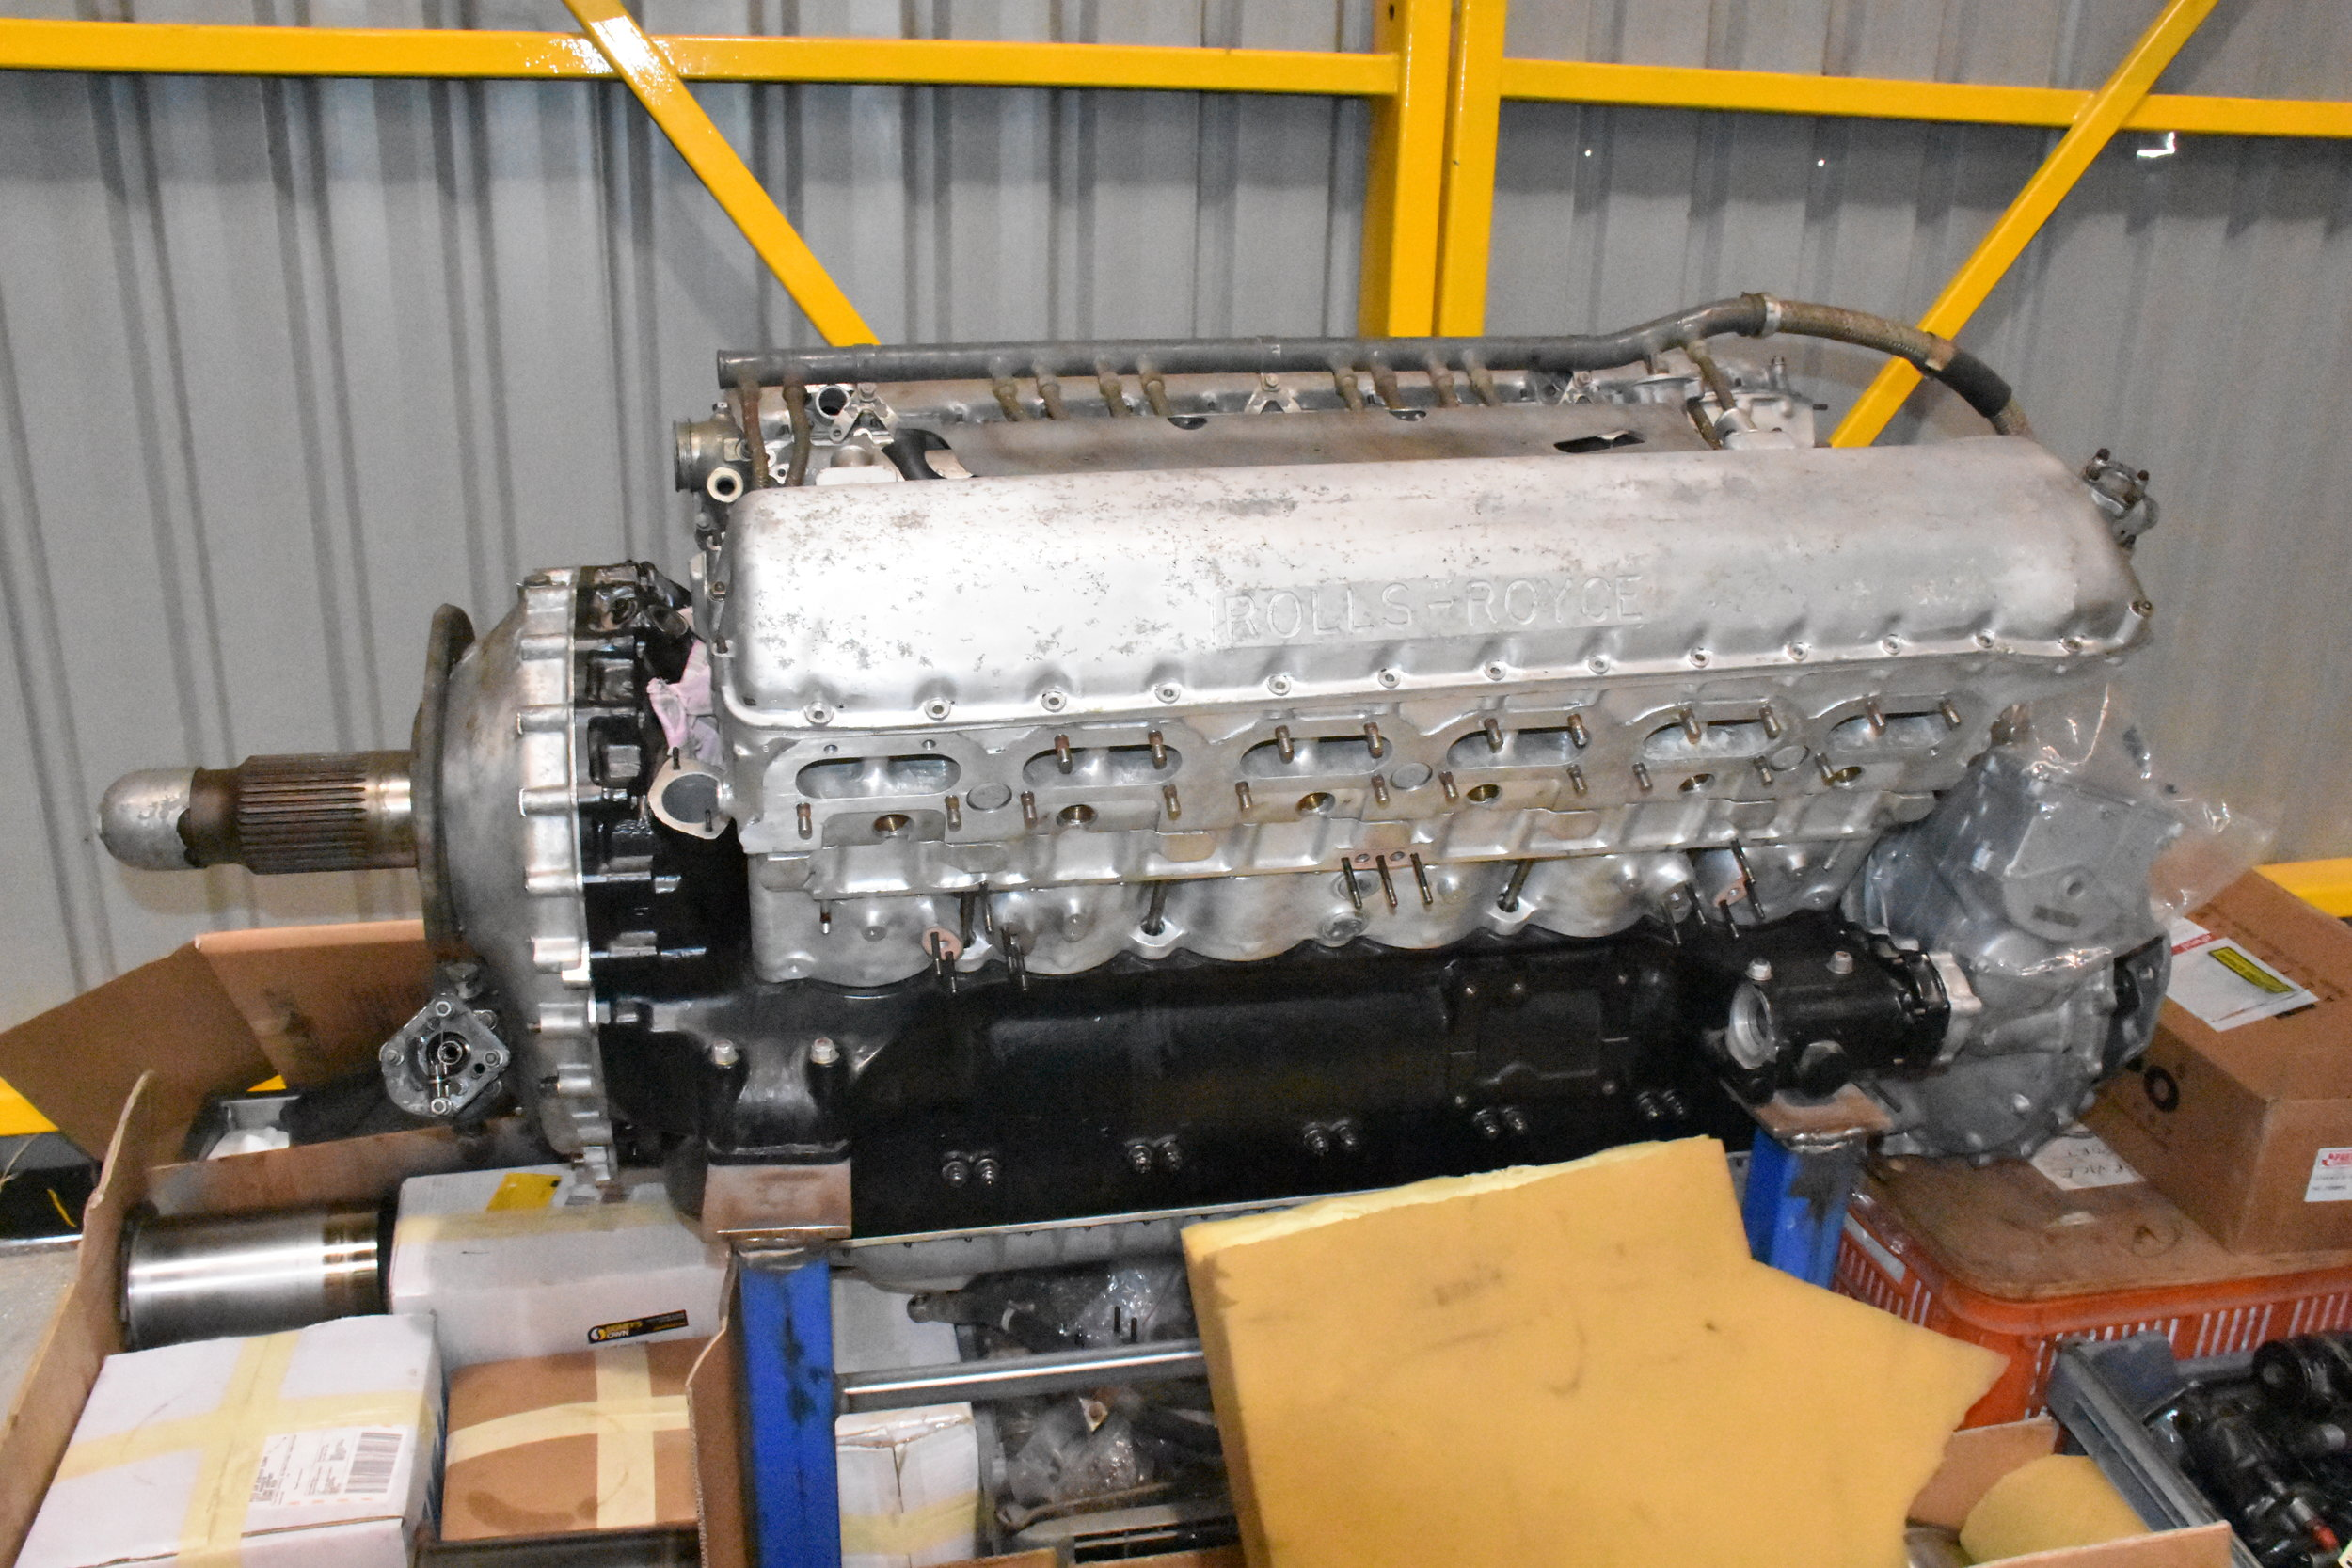 Rolls Royce Merlin beng packed for rebuild in the US